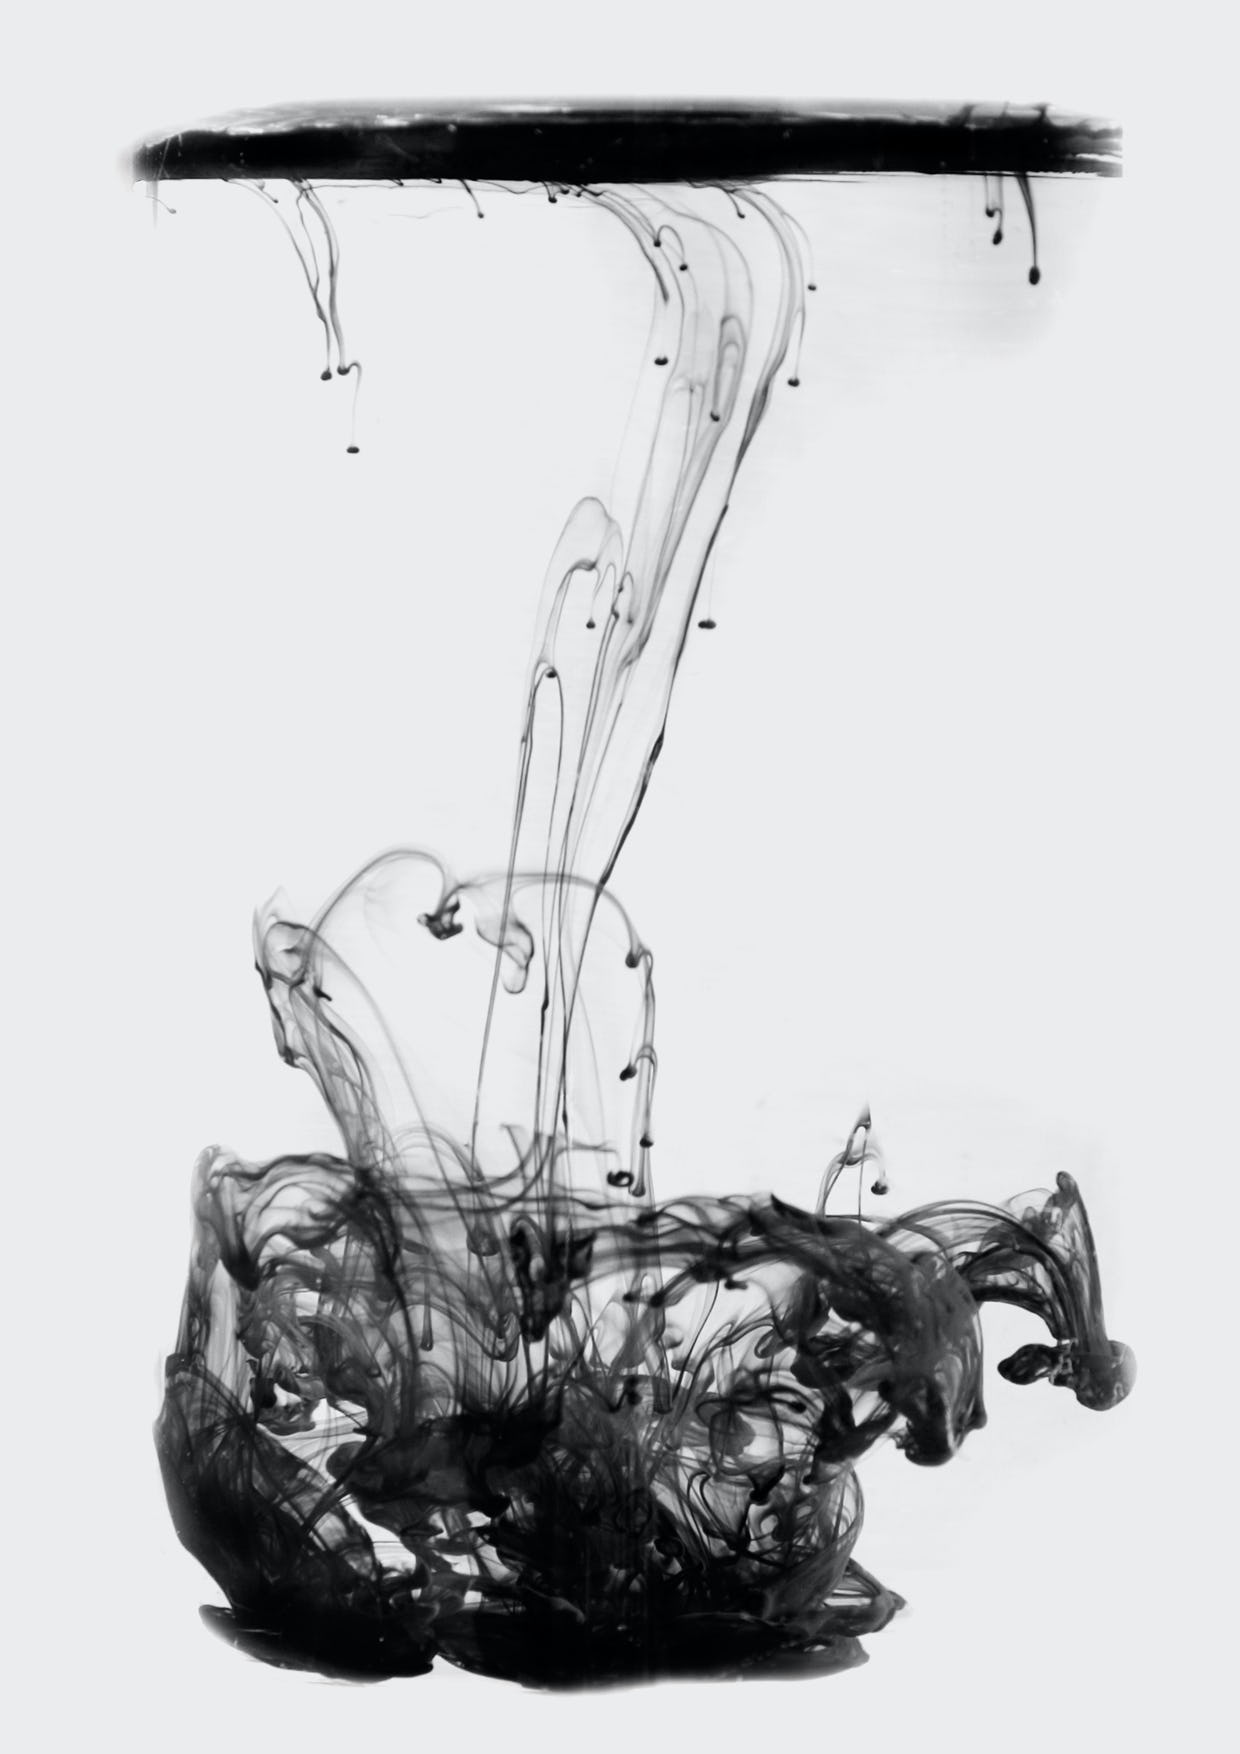 Feifei feng photography floating ink b7